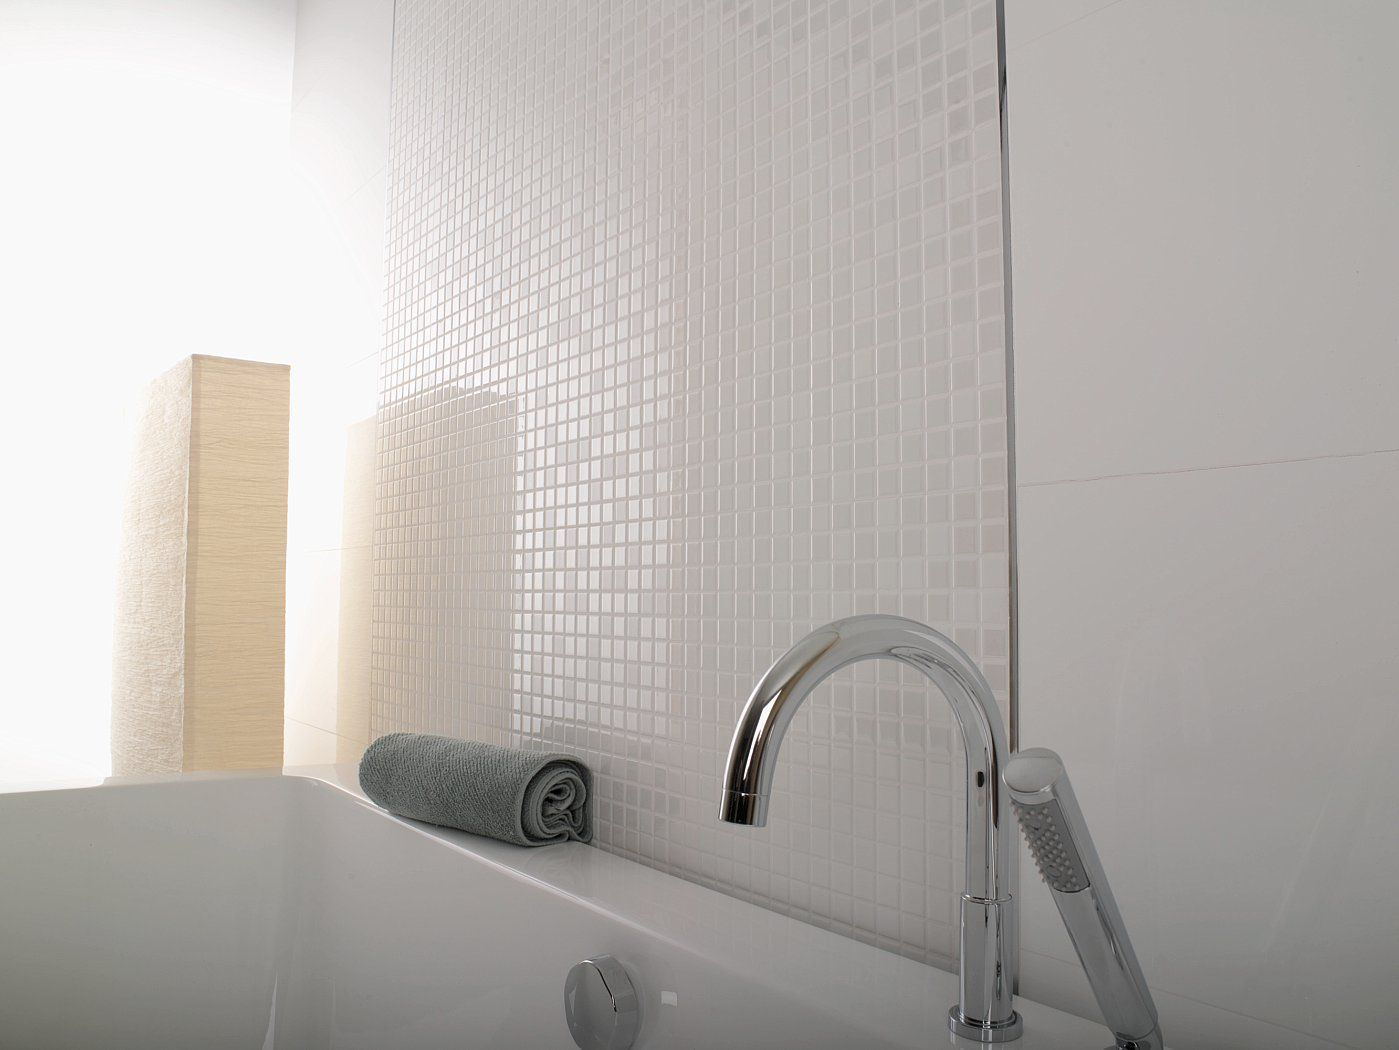 Allways cabin contemporary bathroom perth by ceramo tiles - Find This Pin And More On Ceramo S Mosaic Tiles